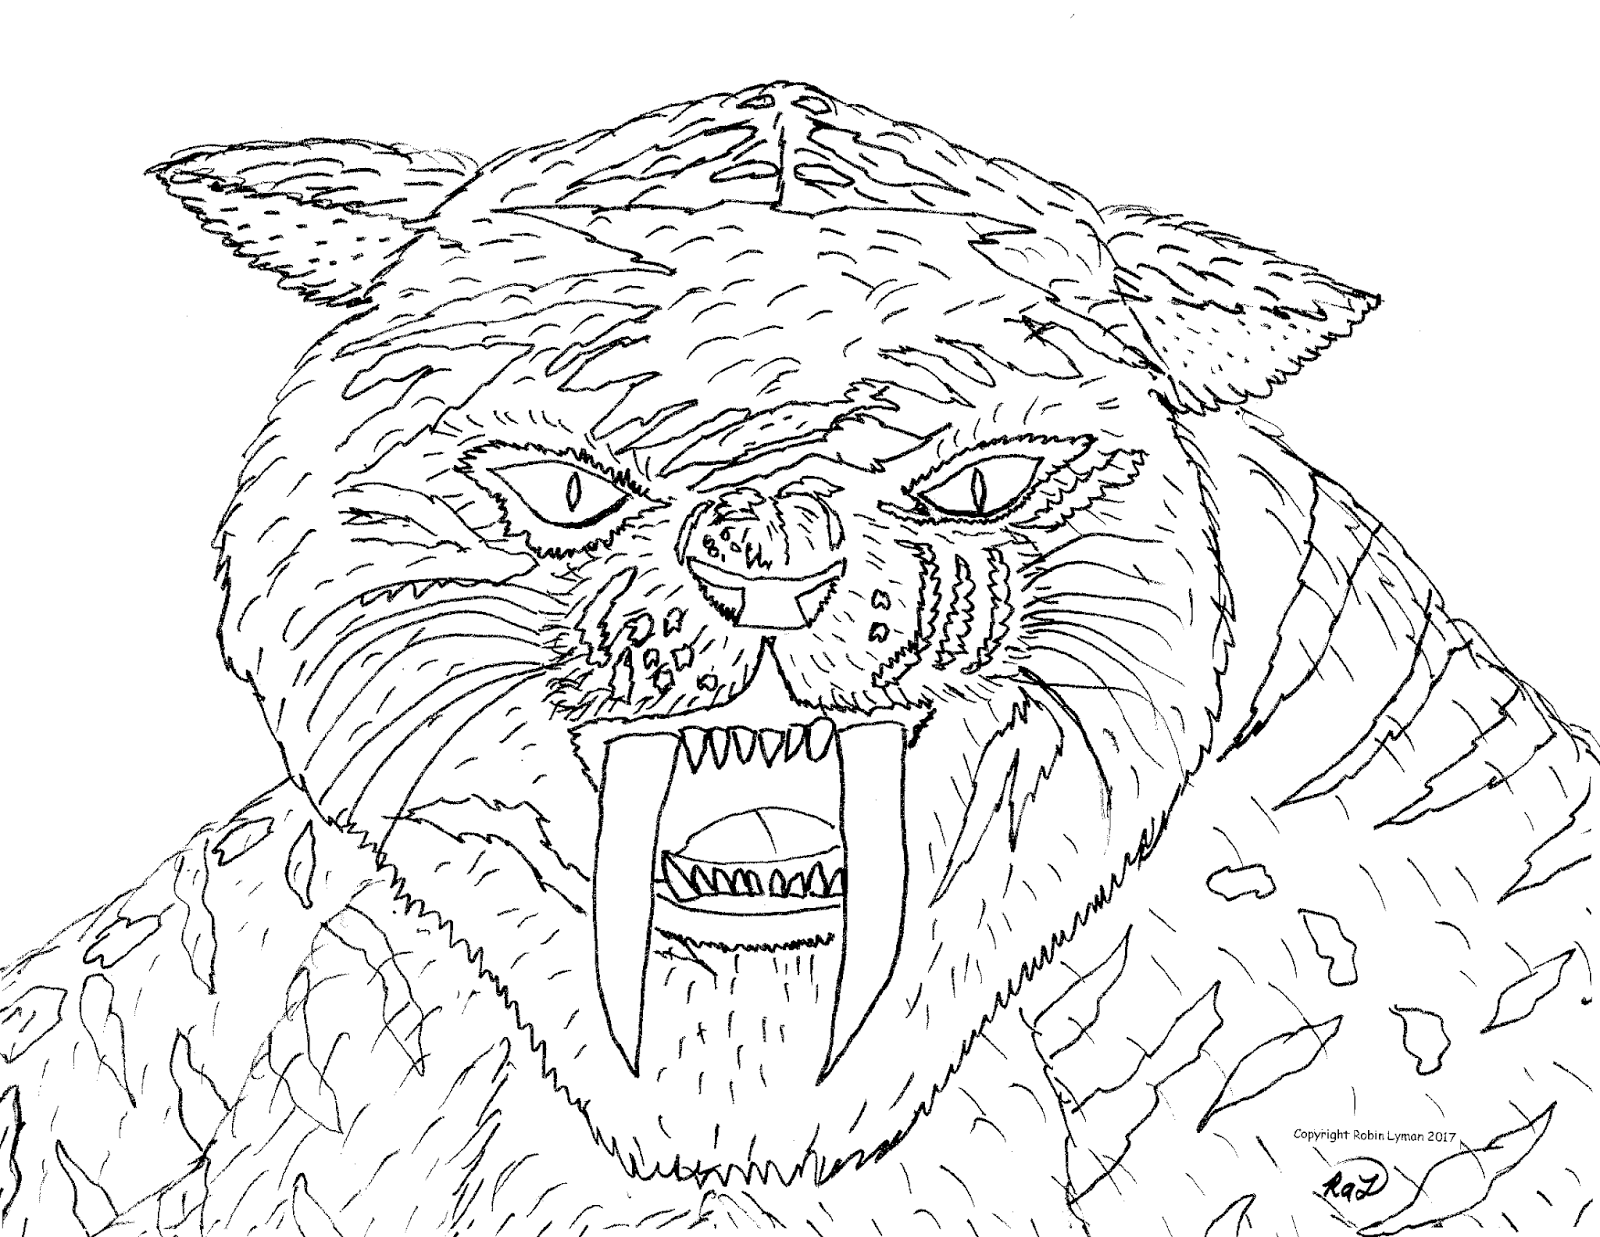 saber tooth coloring pages | Robin's Great Coloring Pages: Smilodon Saber Tooth Cats